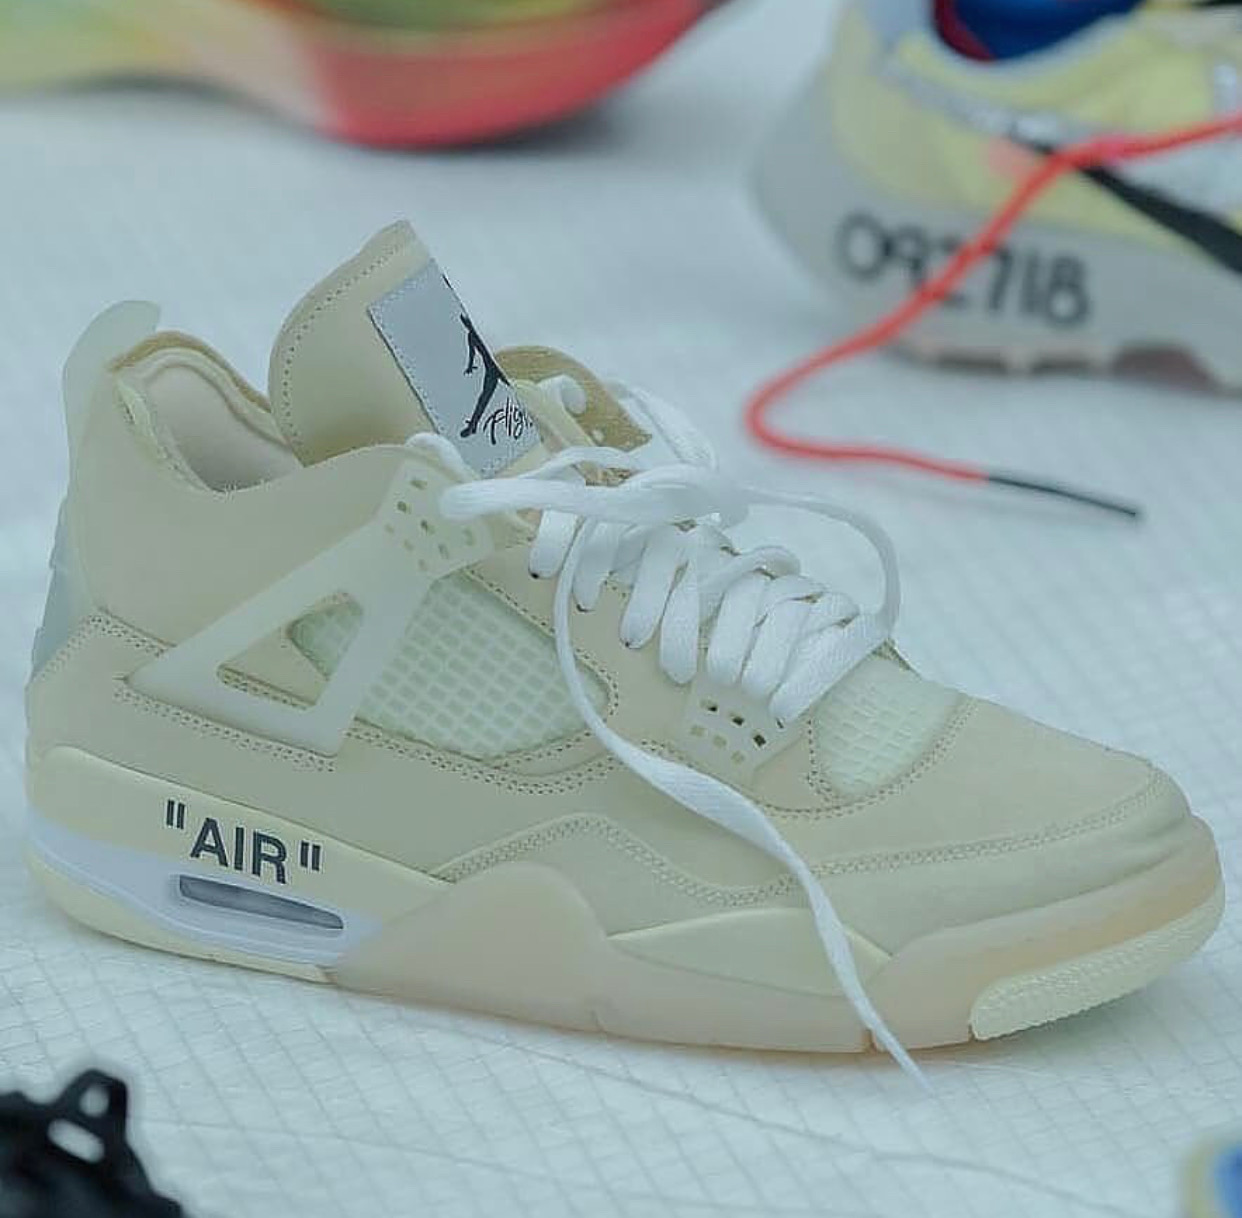 Off-White-Air-Jordan-4-Sail-2020-Release-Date